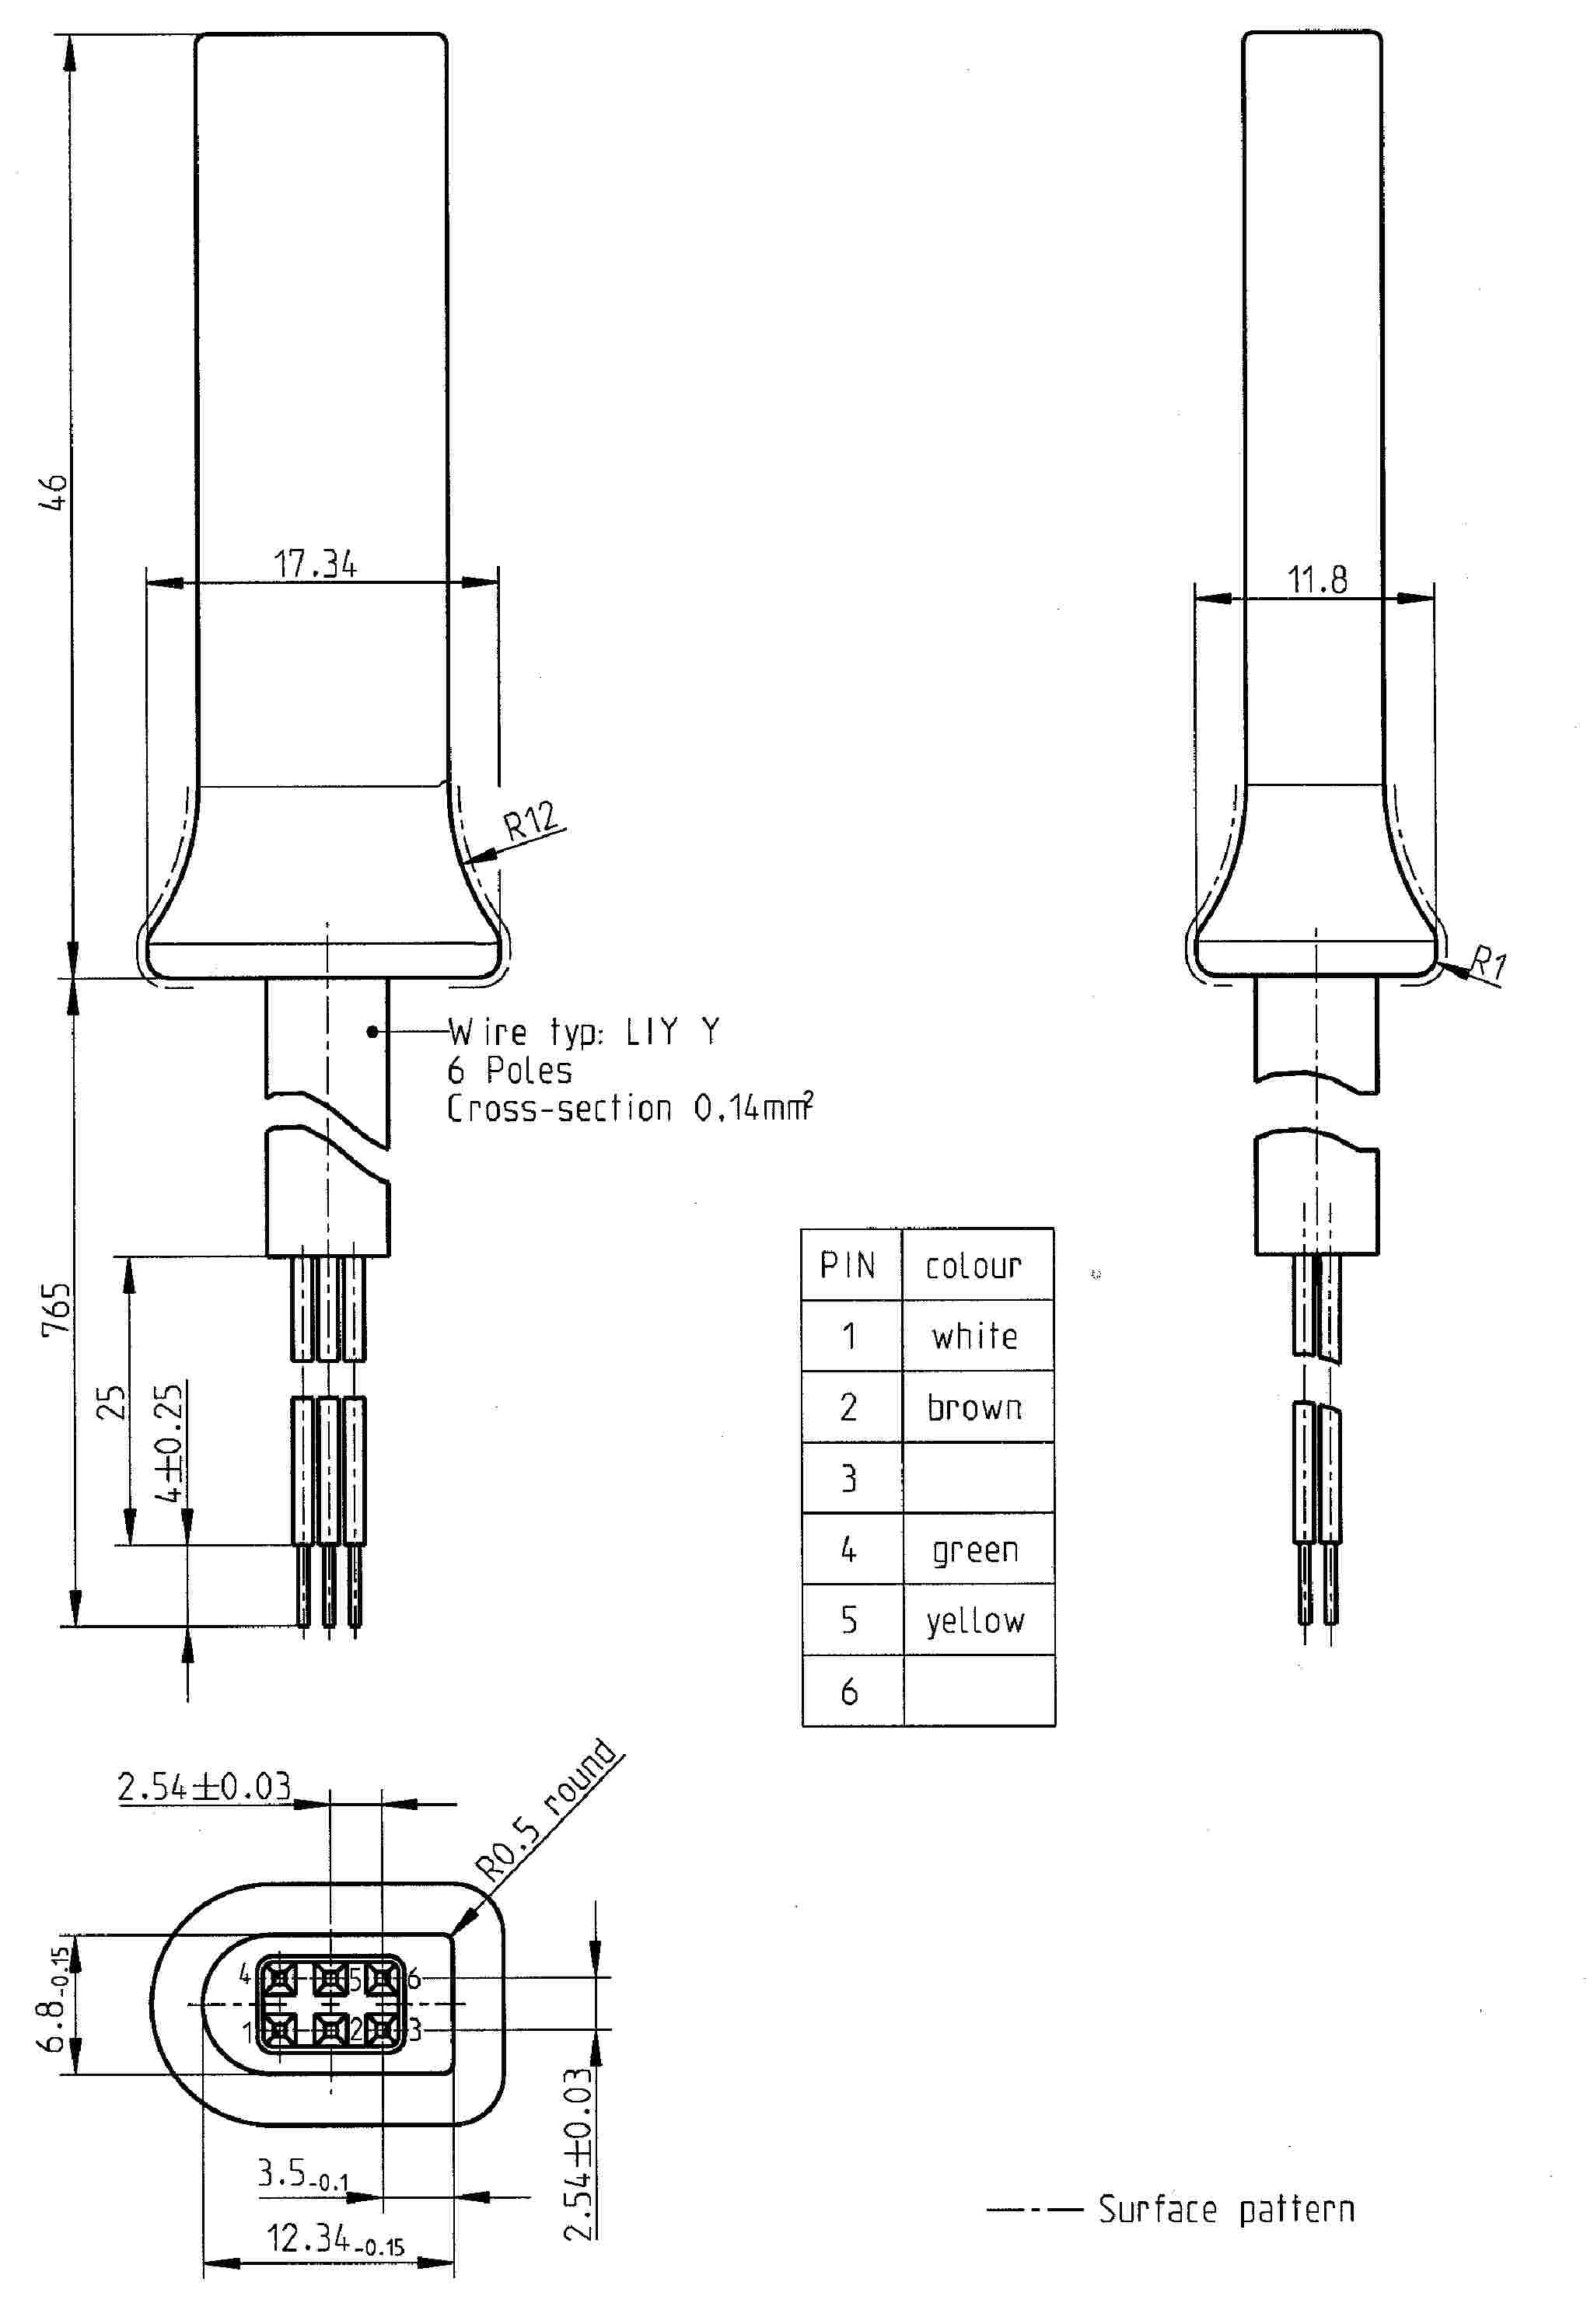 Eur Lex 01985r3821 20121001 En Diagram For Wiring 8 Pin Nr 51